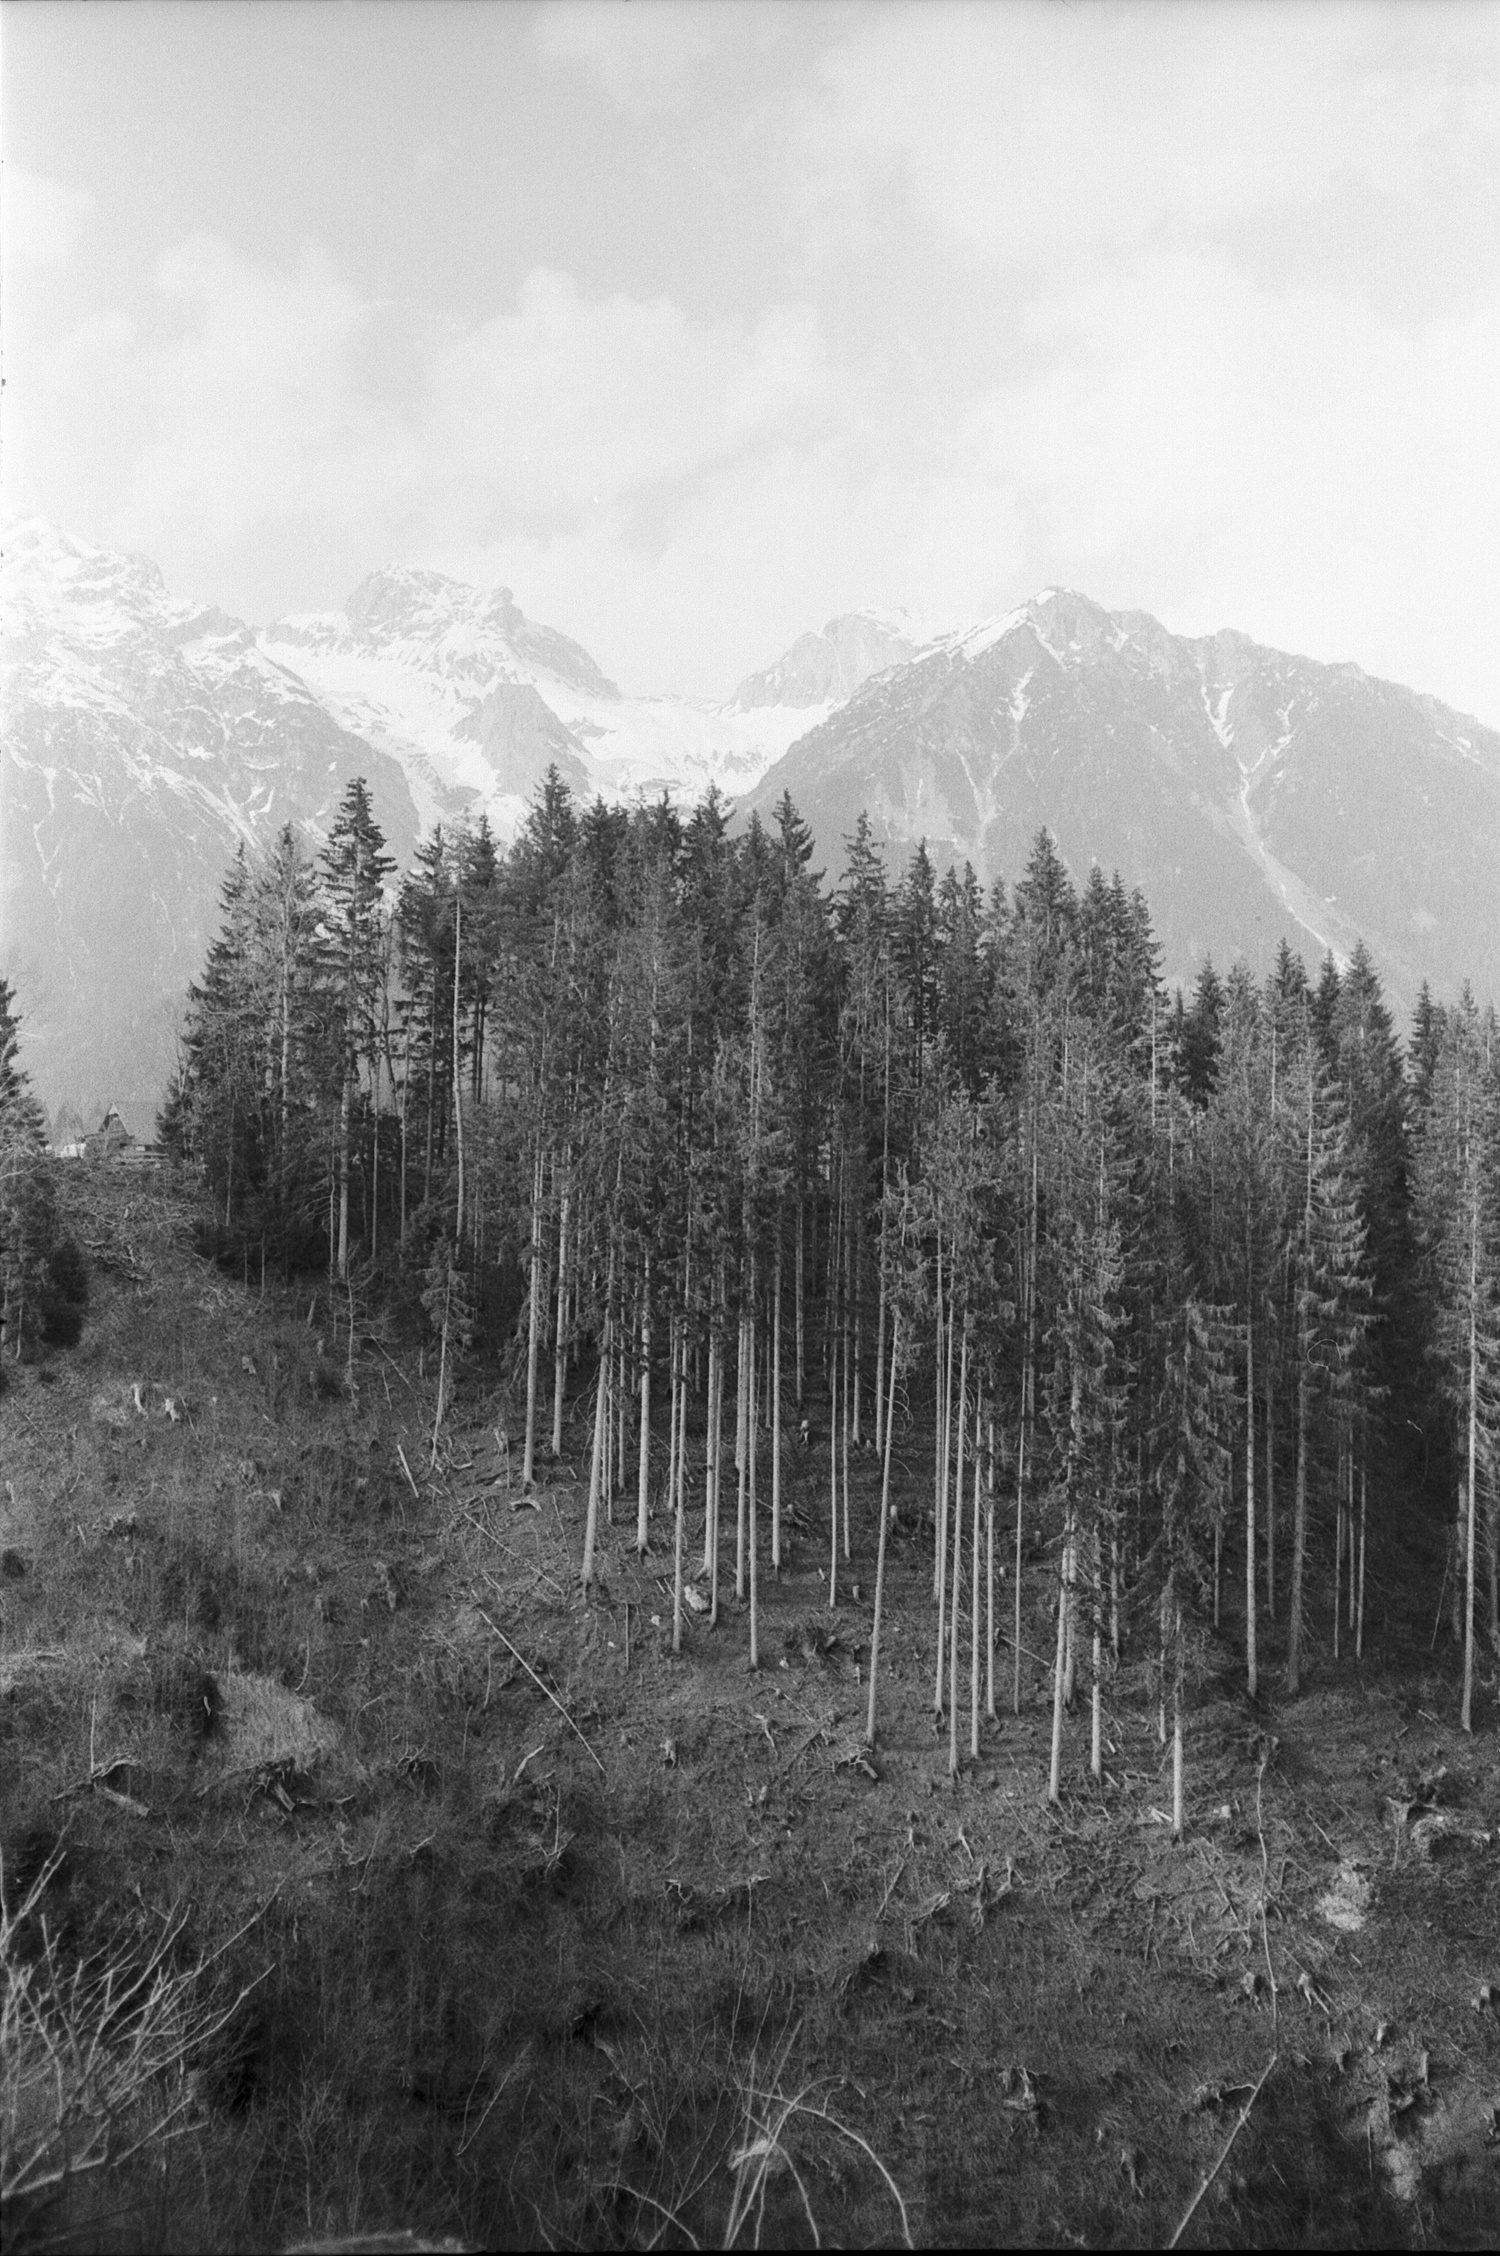 #097 Forest and Mountains, Ramsau am Dachstein